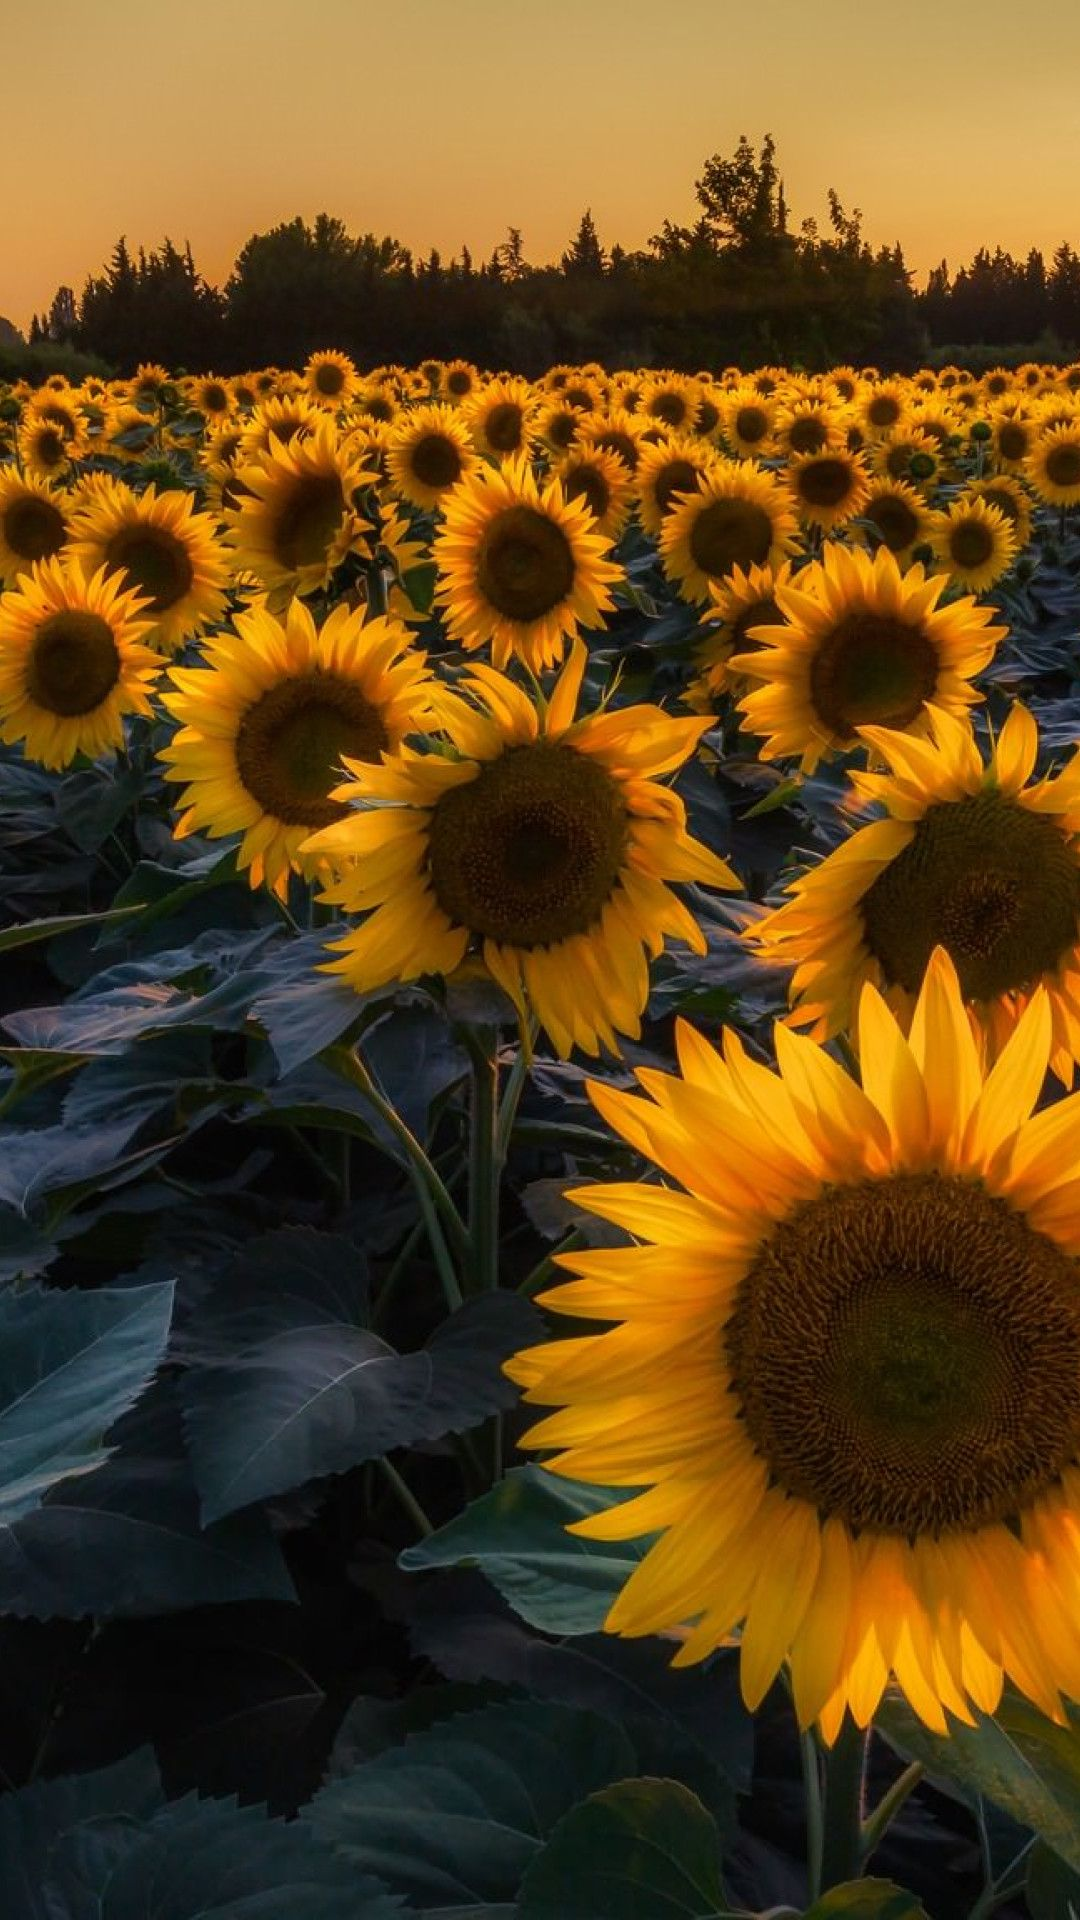 Iphone Sunflower Wallpapers